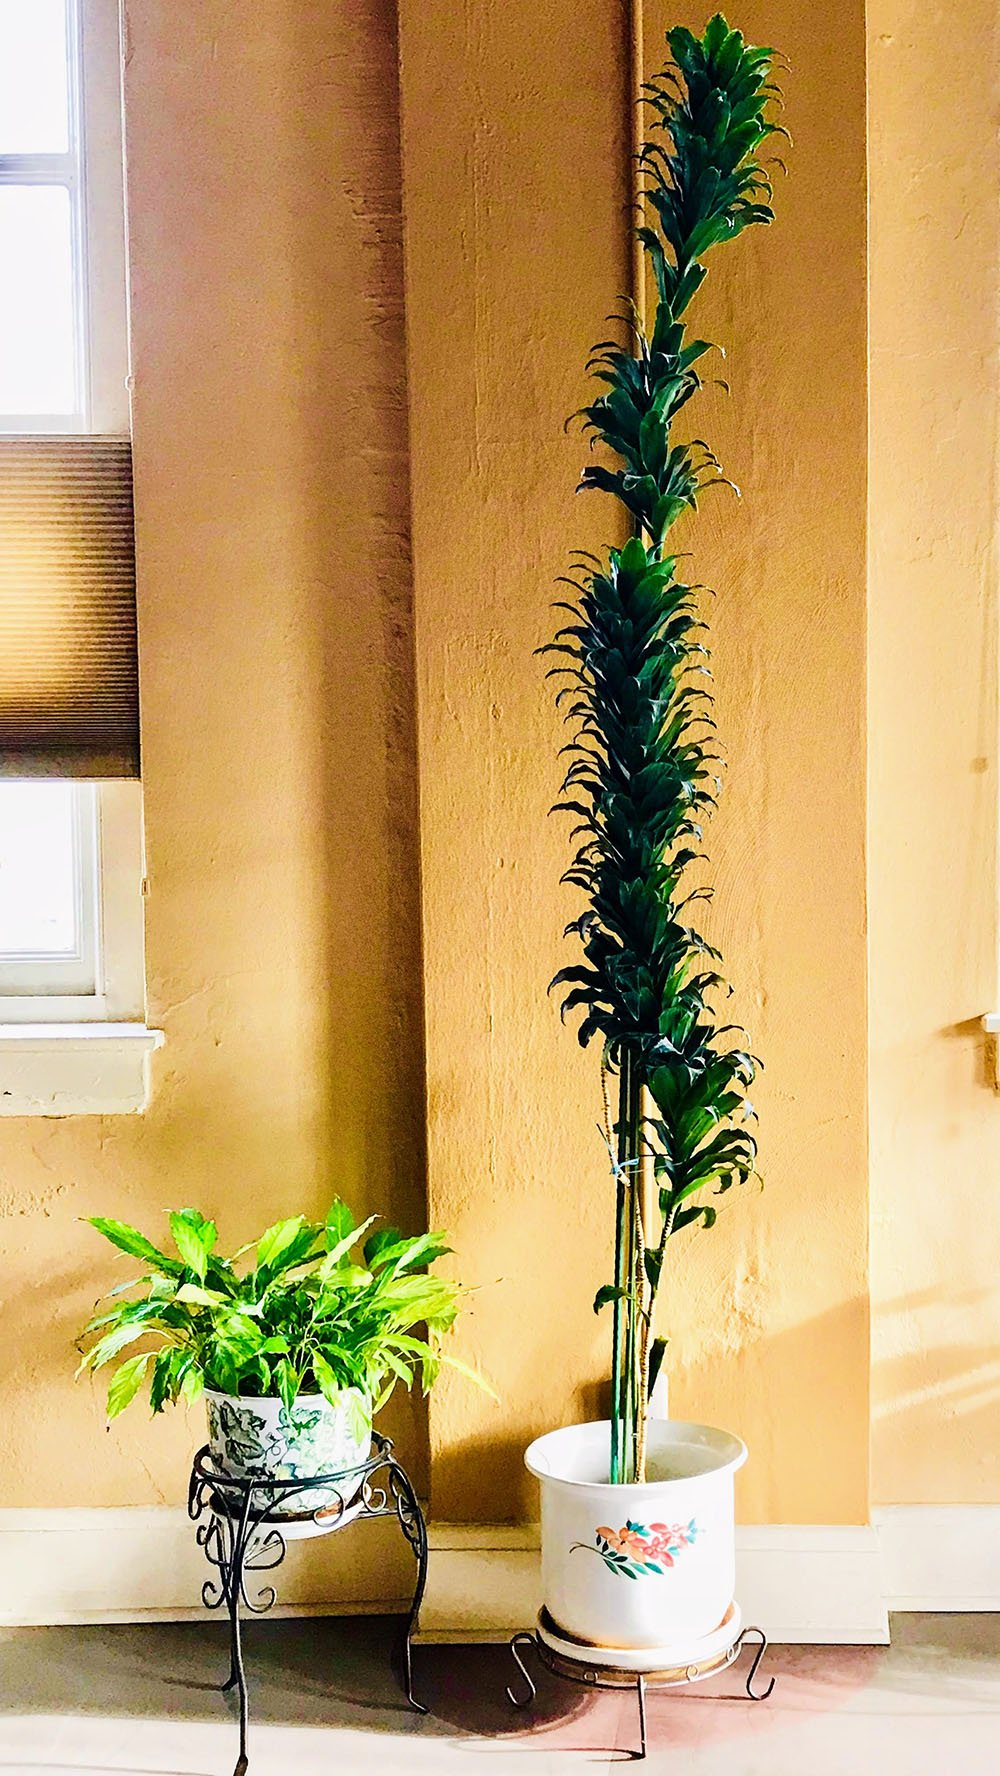 Plants in a home